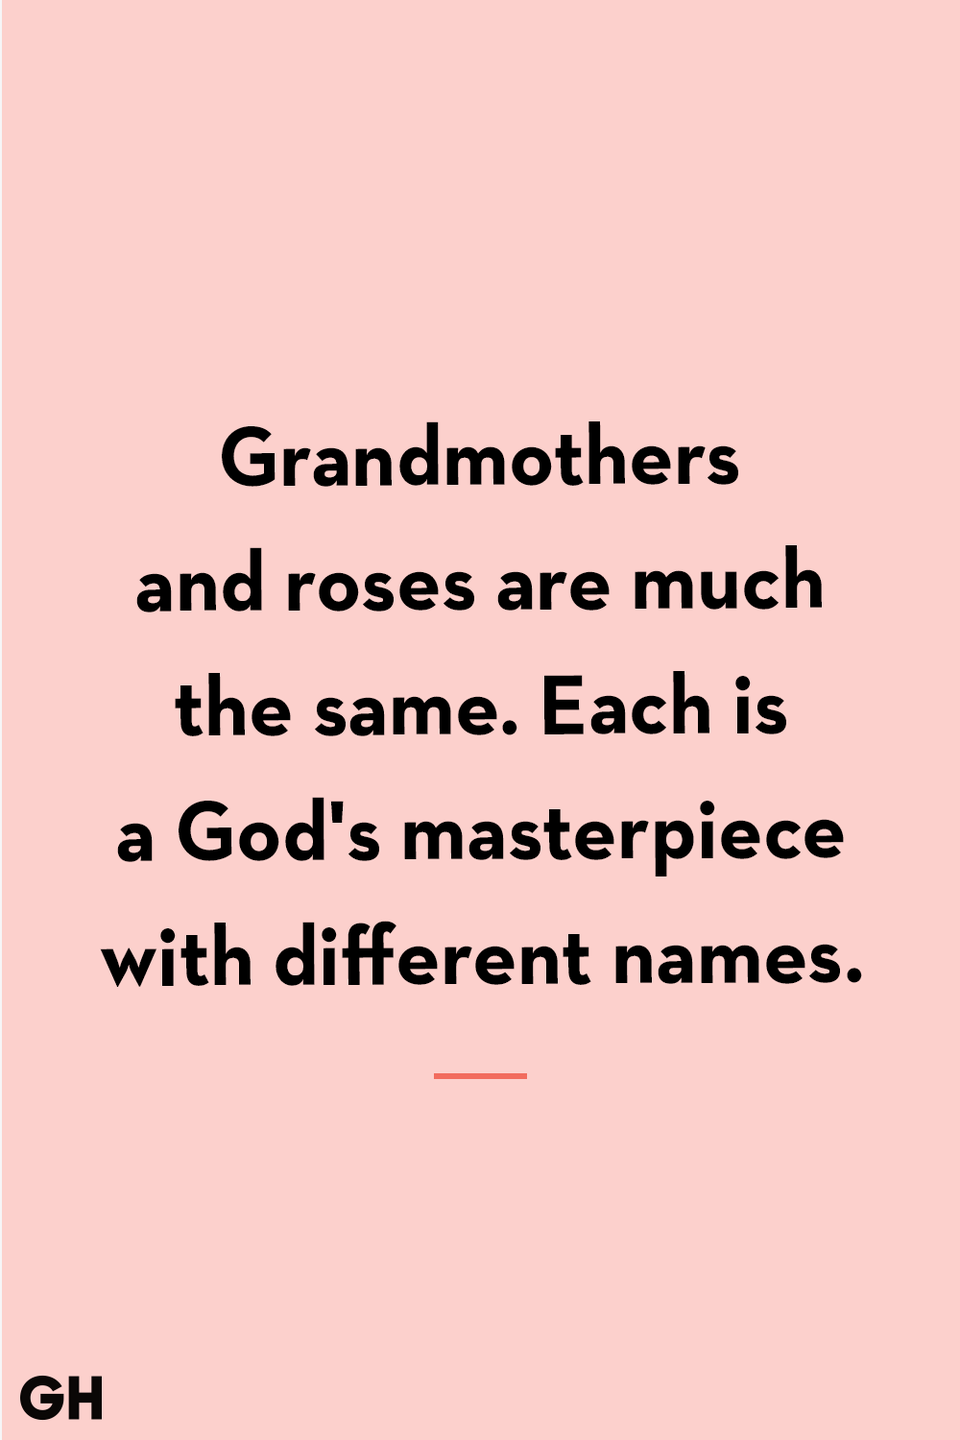 30 Quotes About Grandmas That Will Have You Reaching for ...